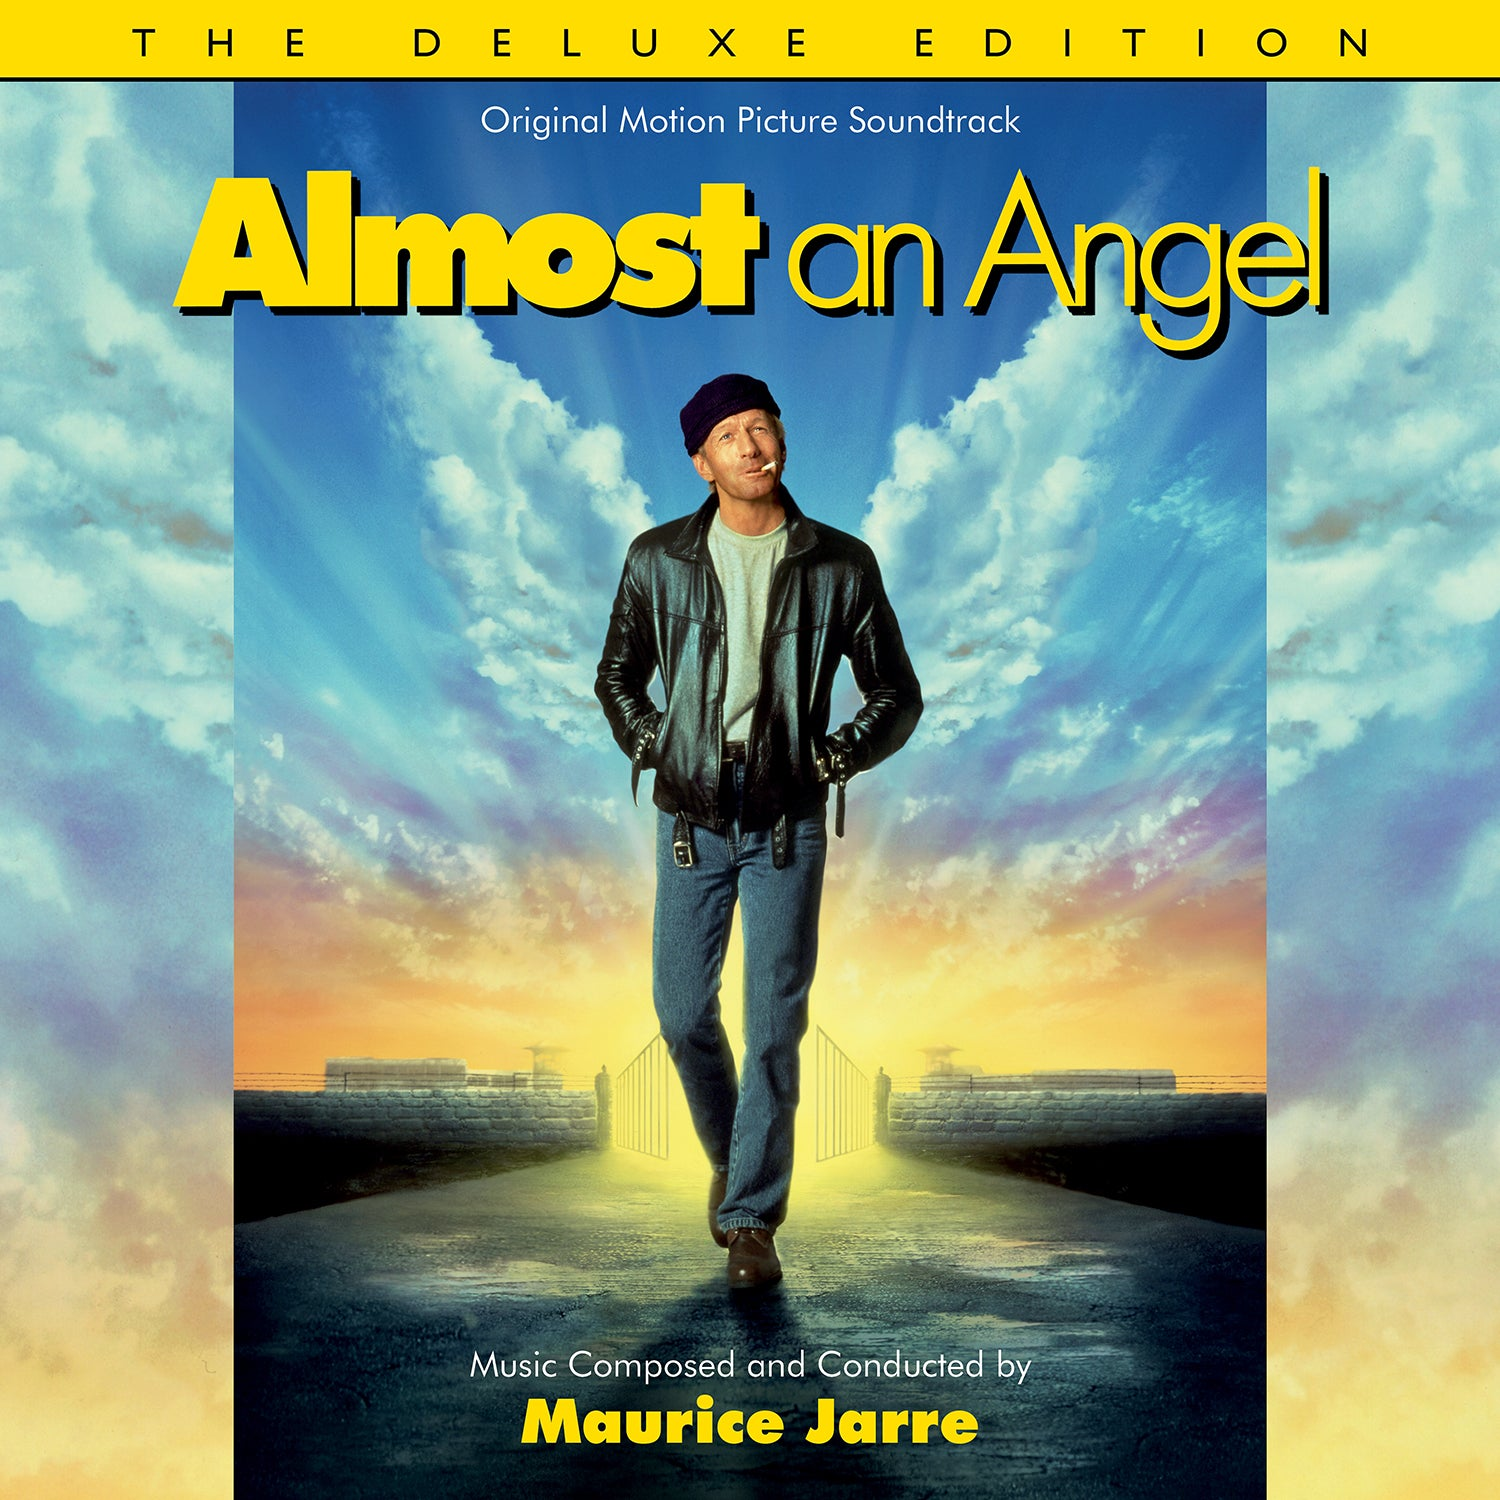 almost an angel the deluxe edition varèse sarabande